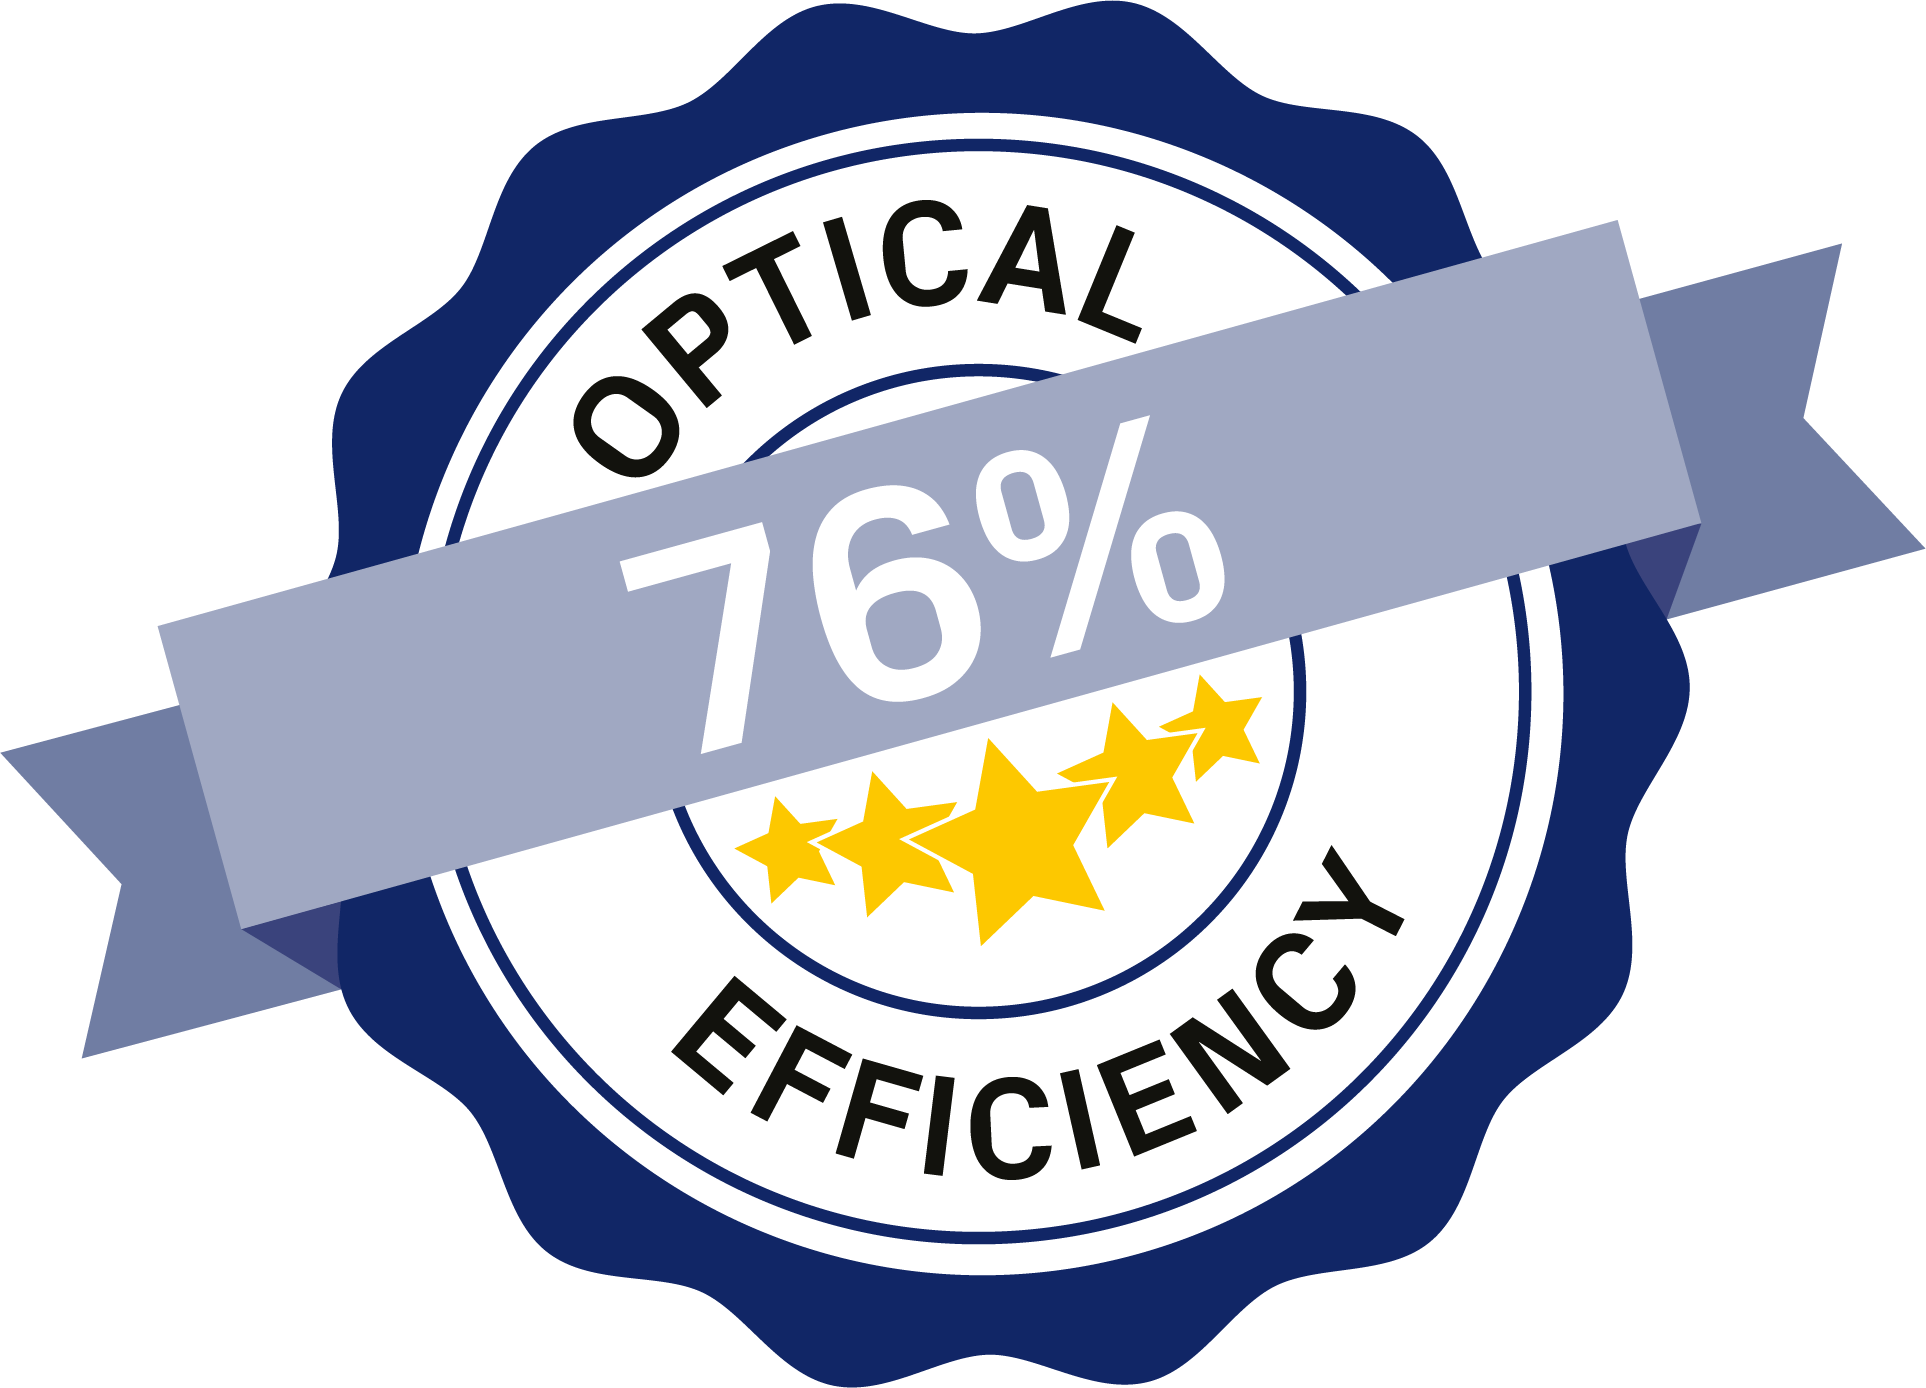 76 % optical efficiency